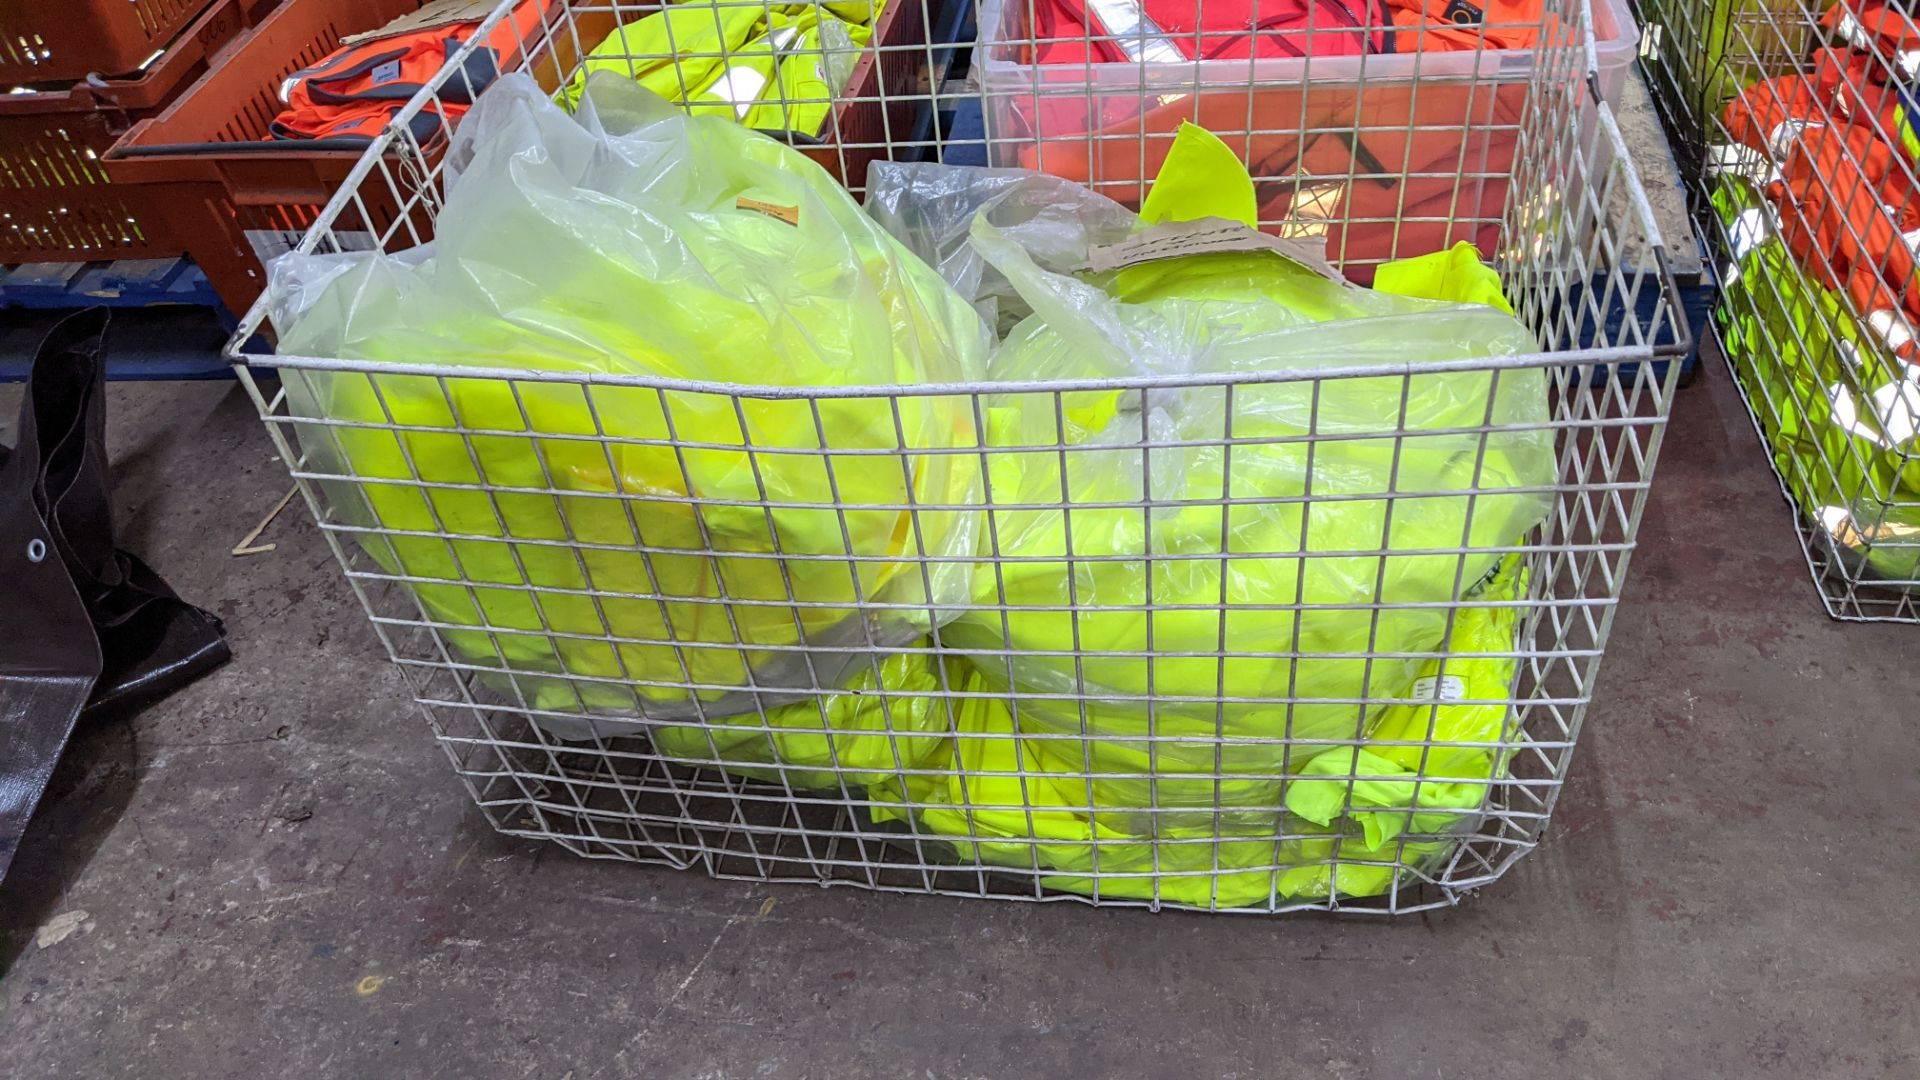 The contents of a cage of off-cuts & unfinished garments, all in yellow hi-vis fabrics. NB cage exc - Image 3 of 4